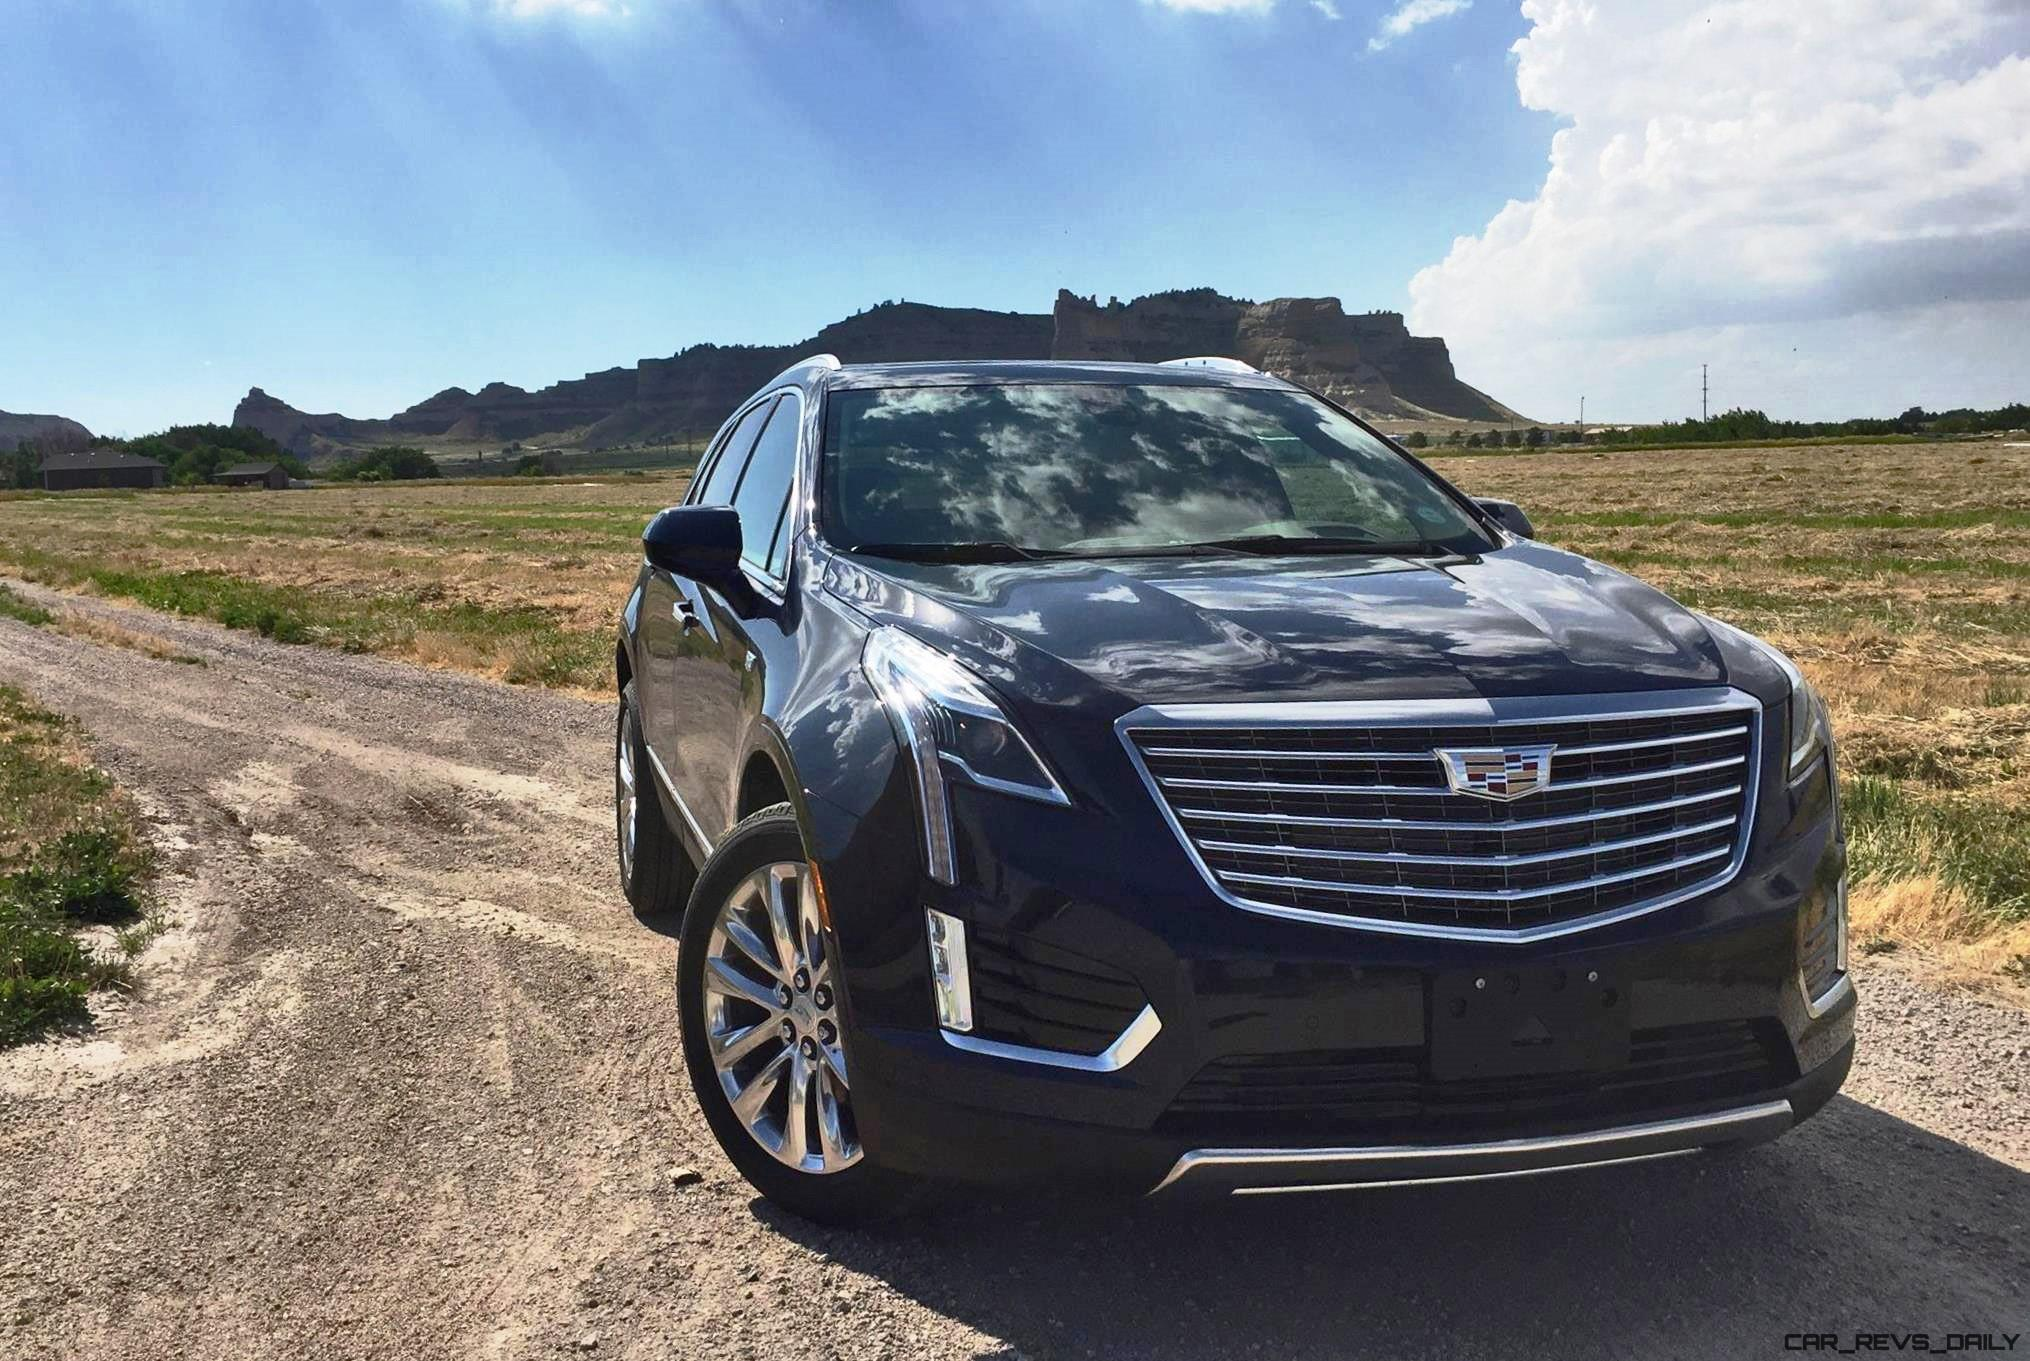 2017 cadillac xt5 platinum road test review by tim - 2017 cadillac xt5 interior colors ...